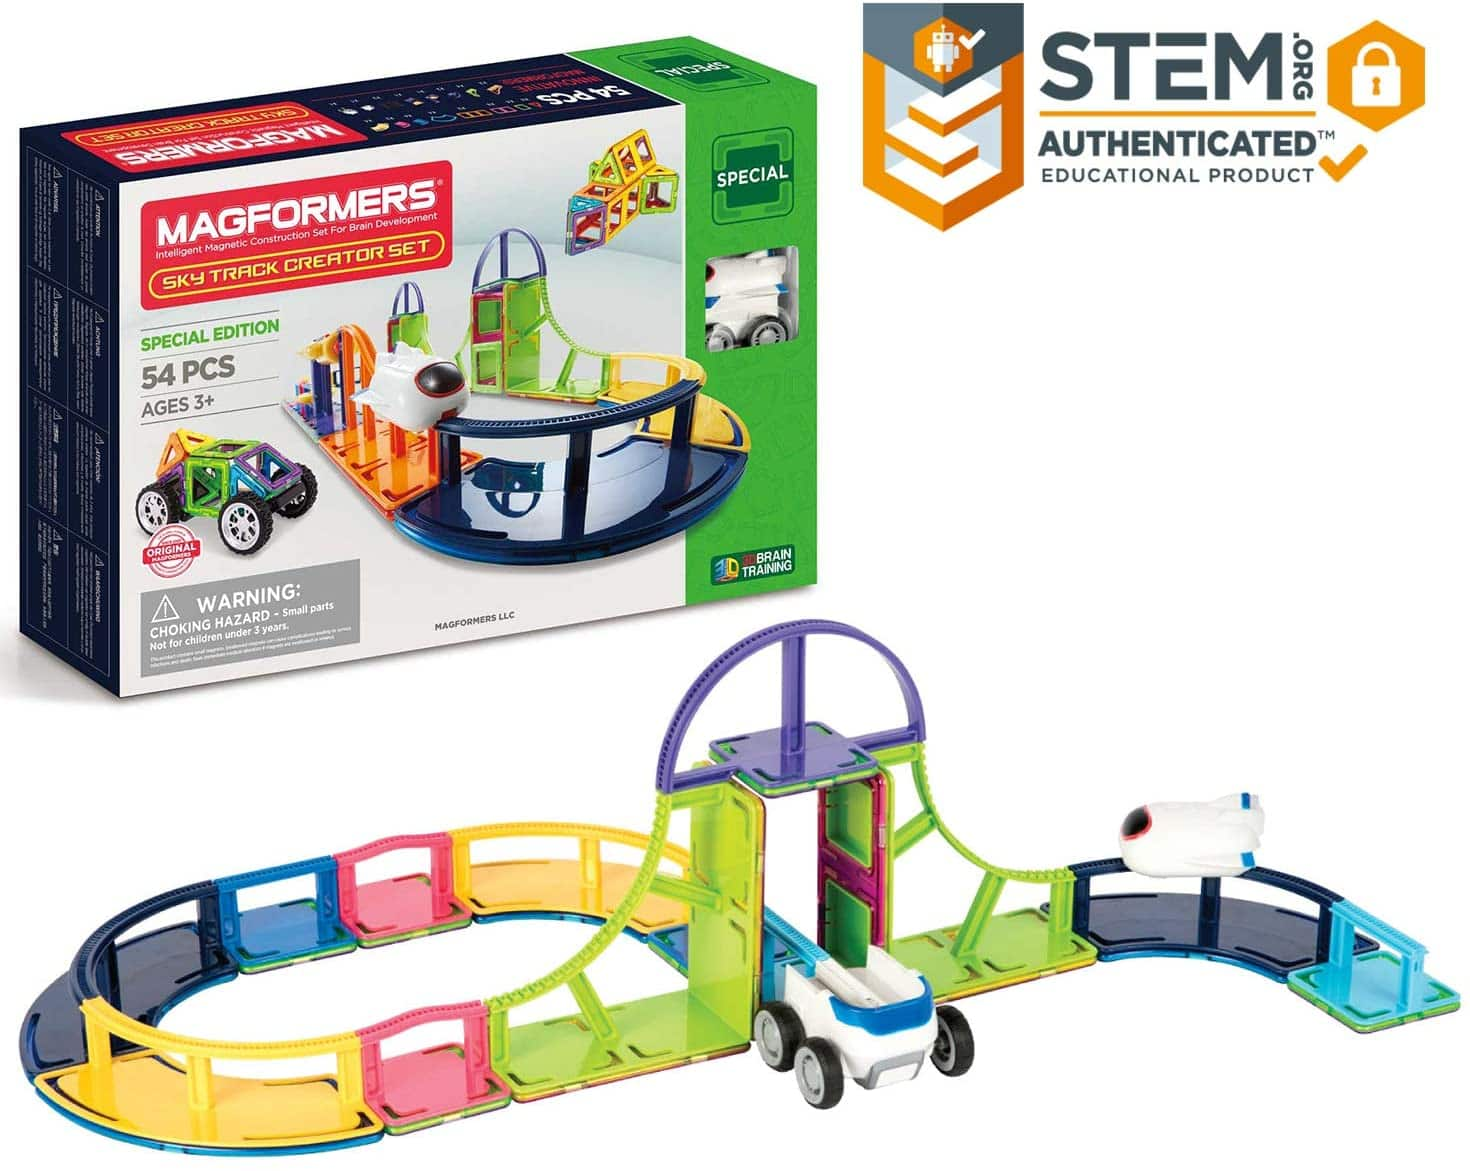 54pc Magformers Sky Track Set $35.80 + Free Shipping